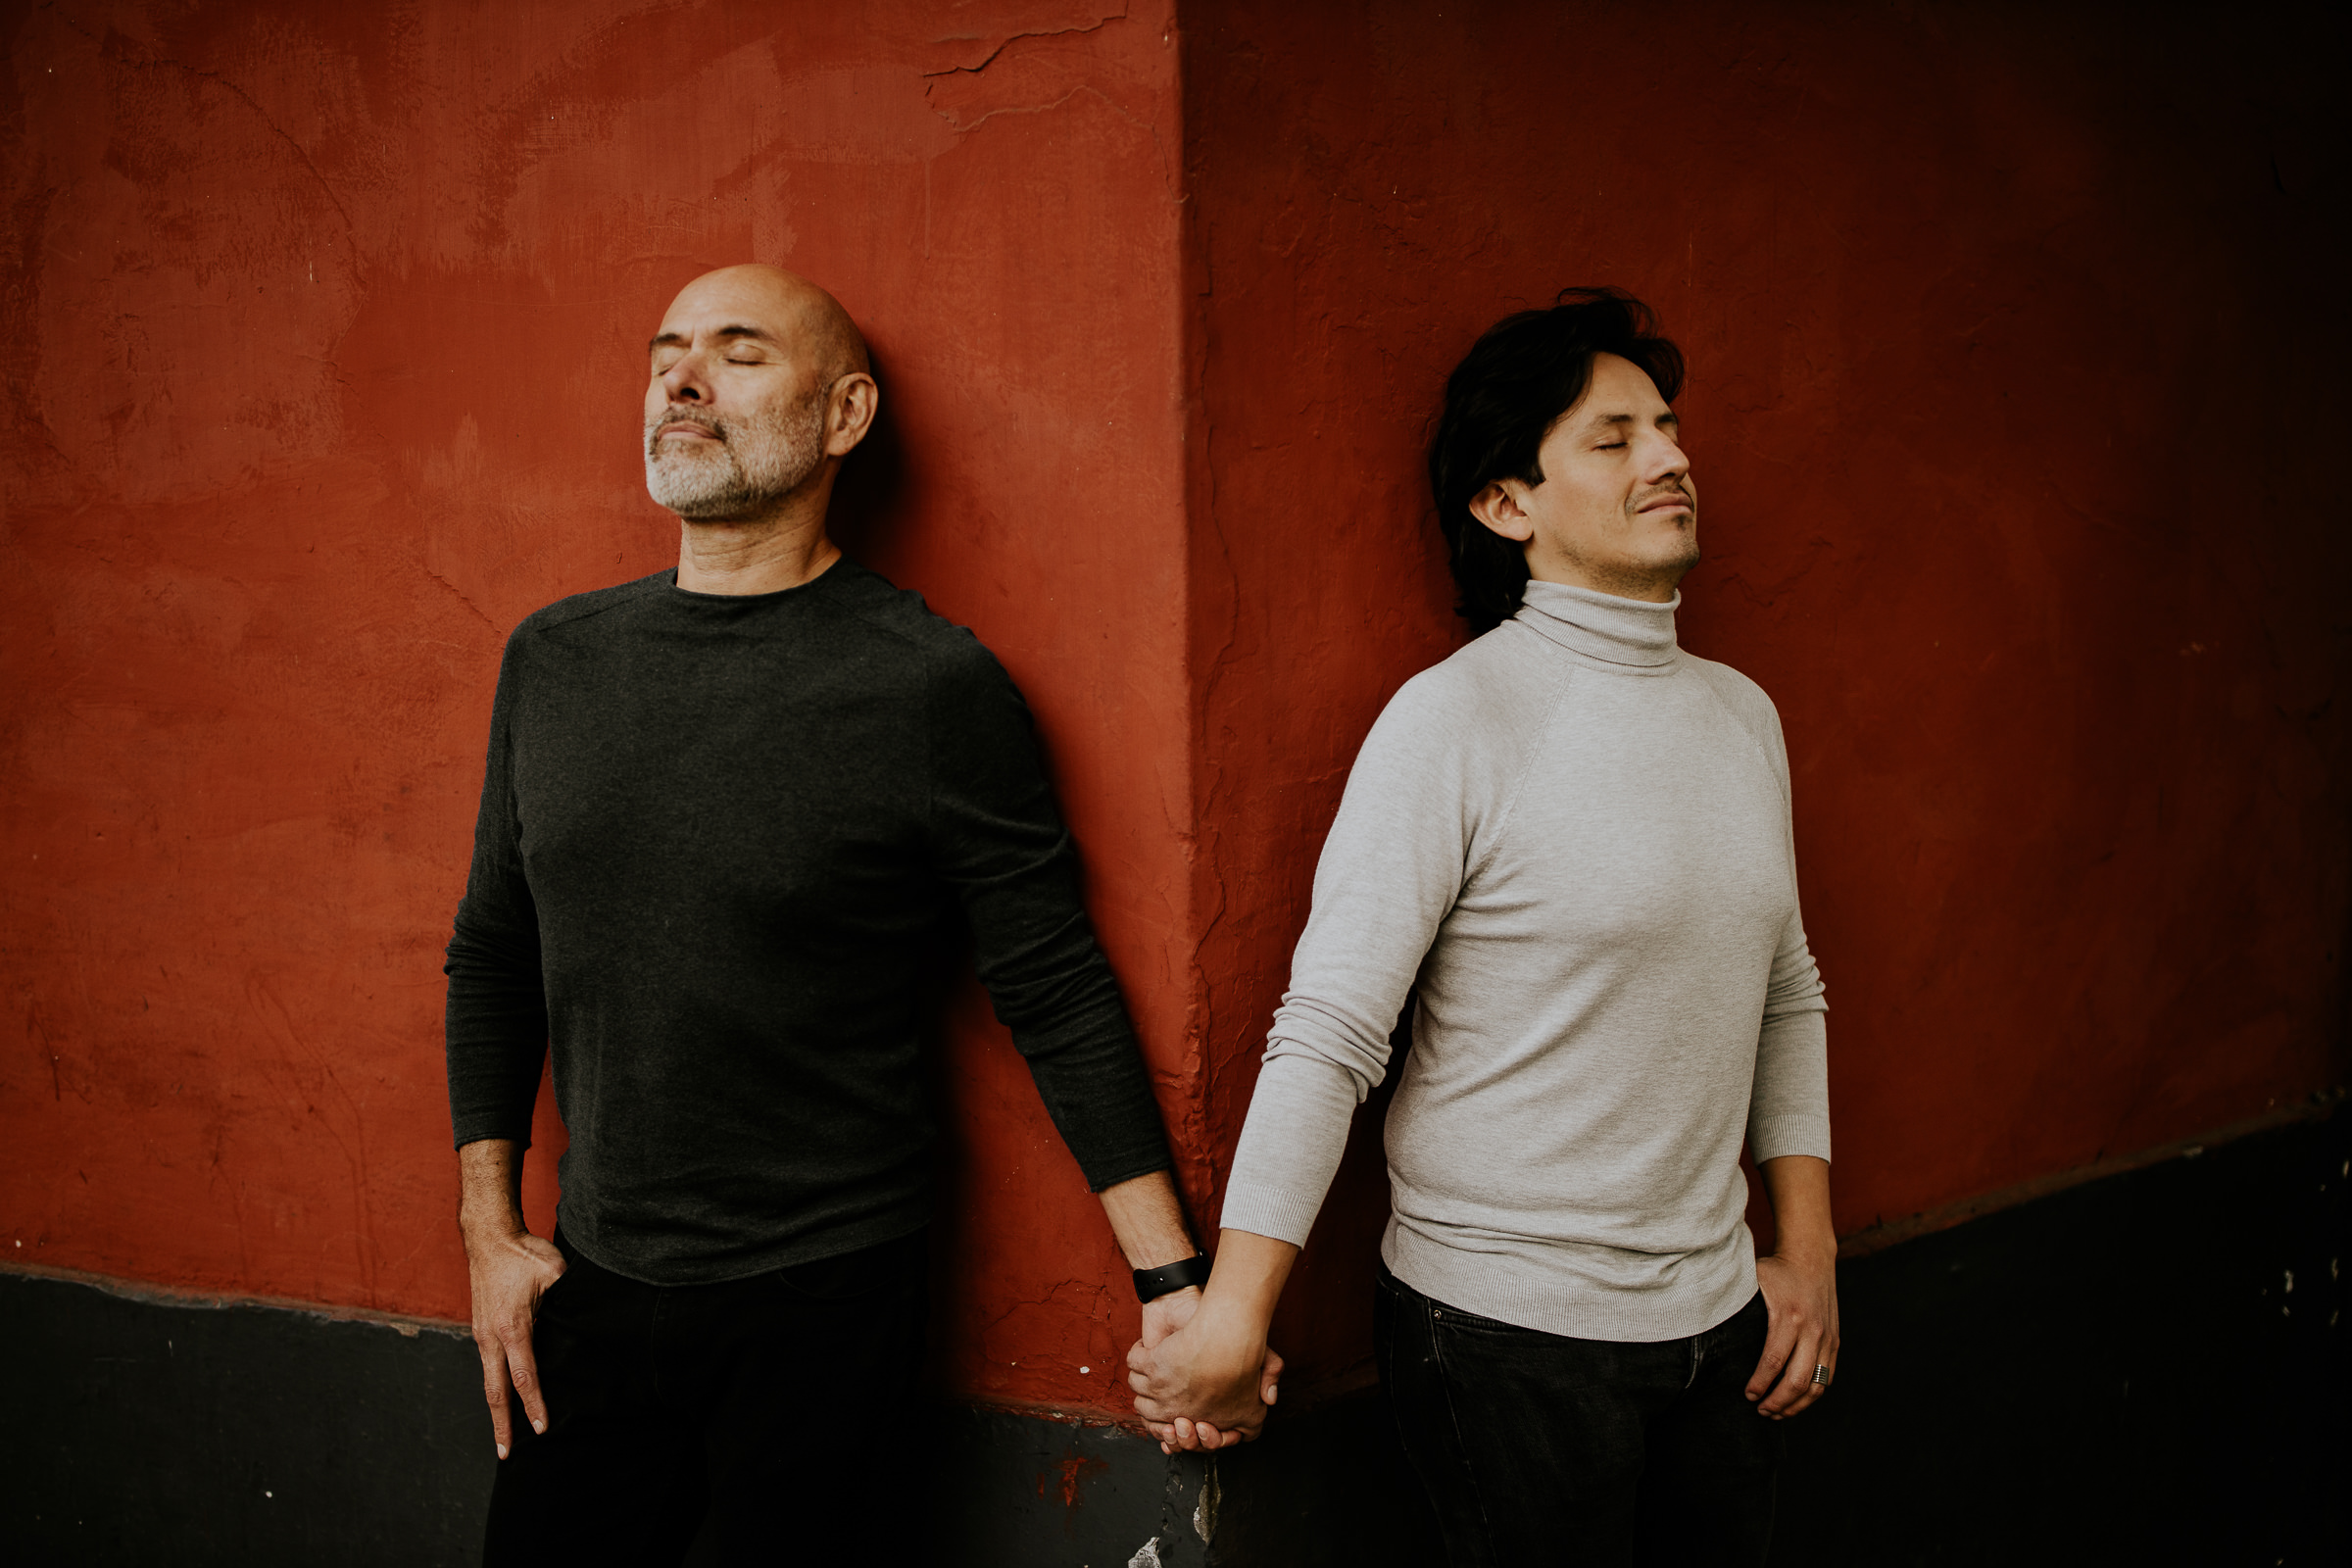 two men holding hands in front of a red wall